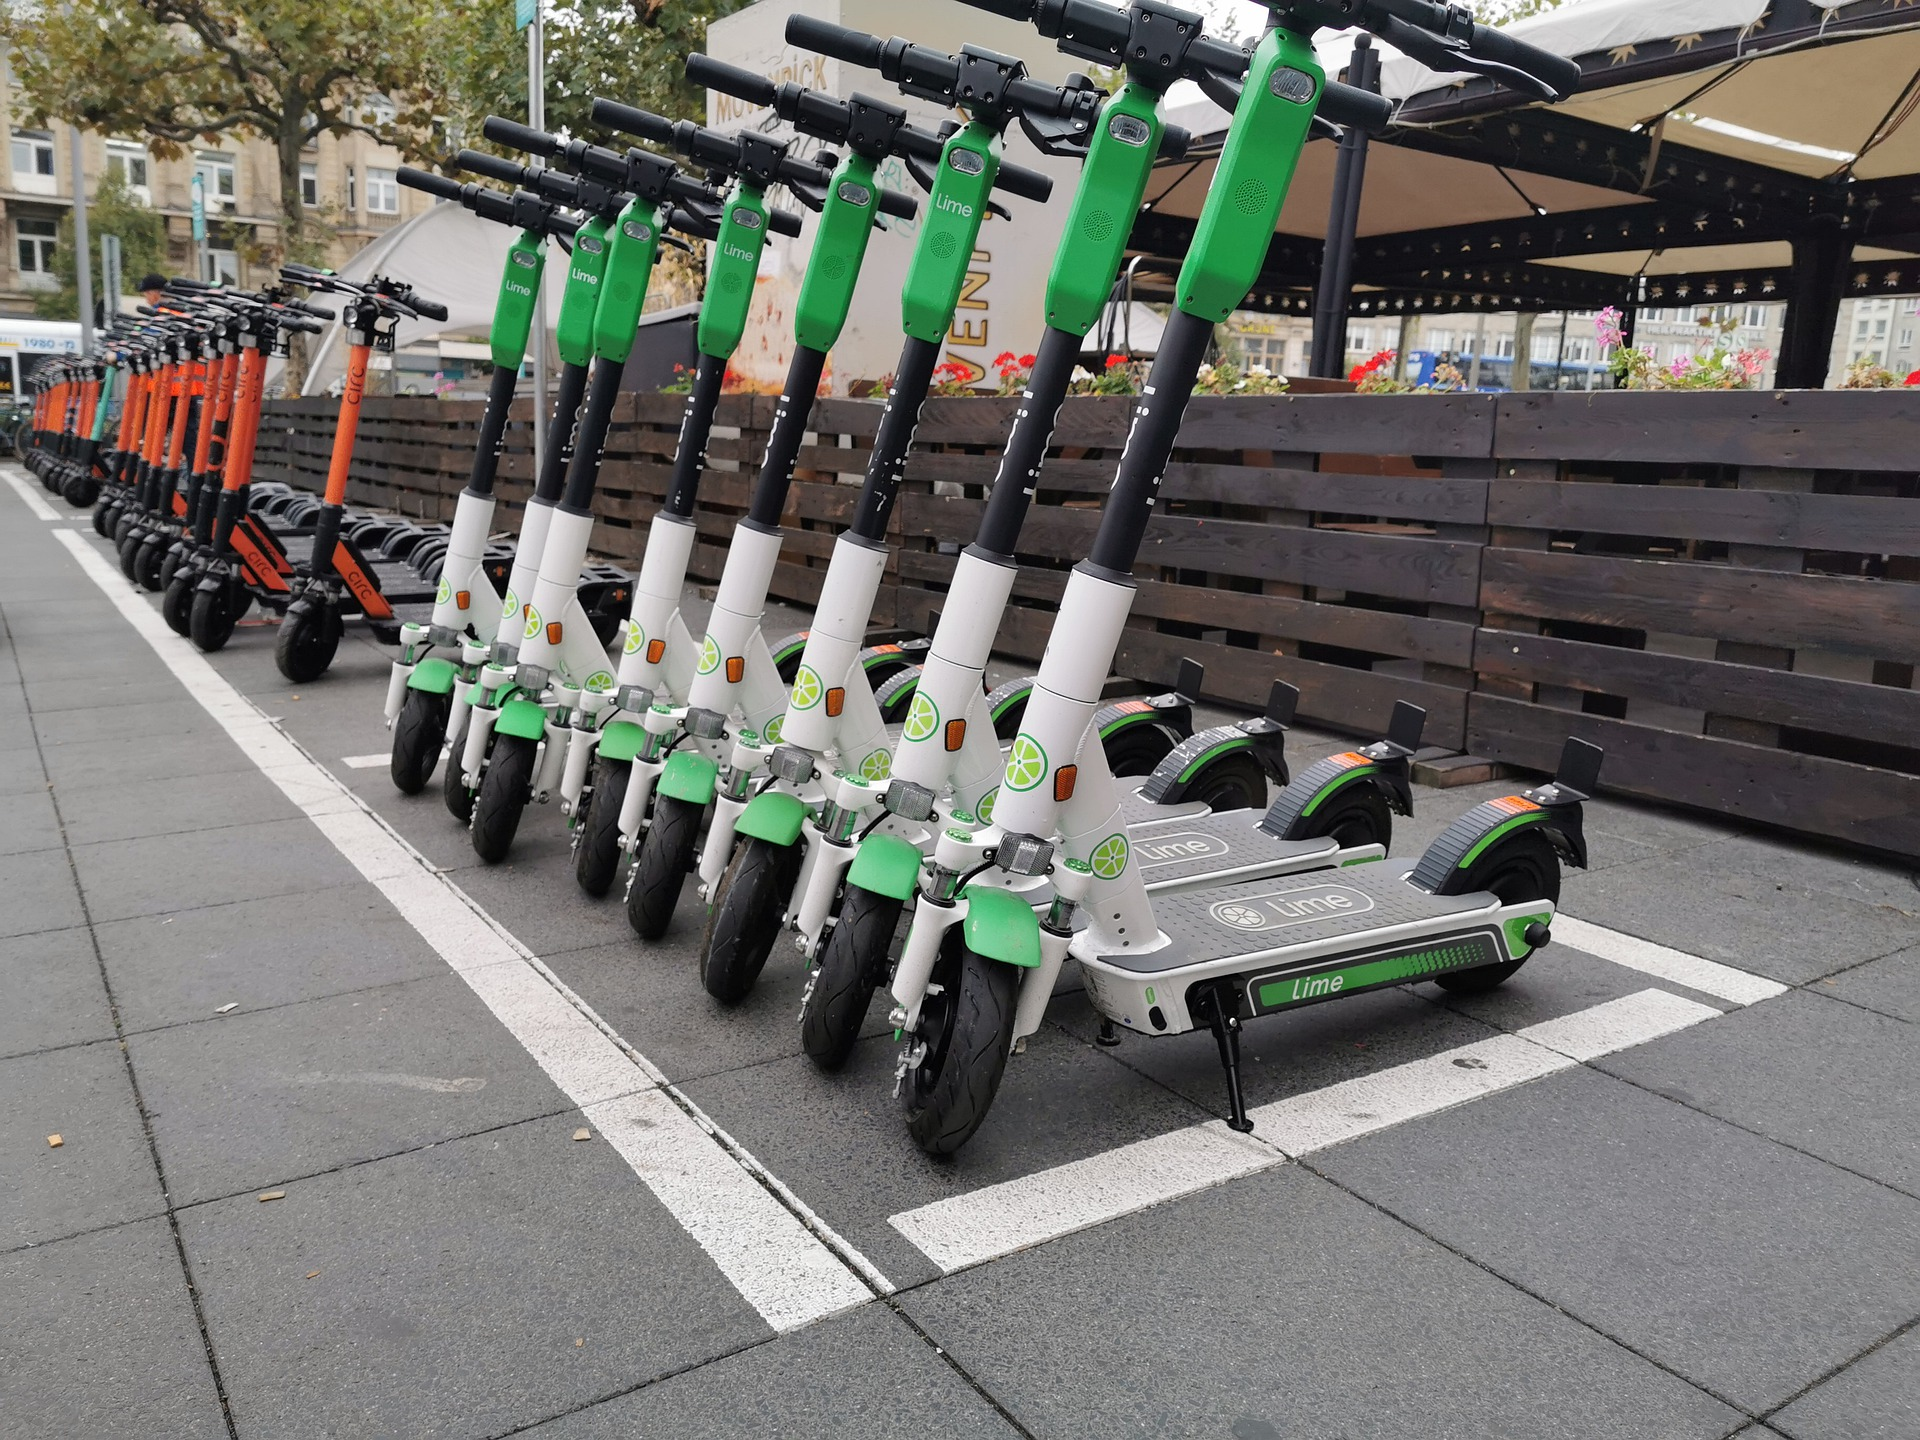 Large photo of 20+ green and red scooters parked in front of a restaurant with a brown, slatted, wooden fence, meant to symbolize the need for an accident lawyer and personal injury lawyer.